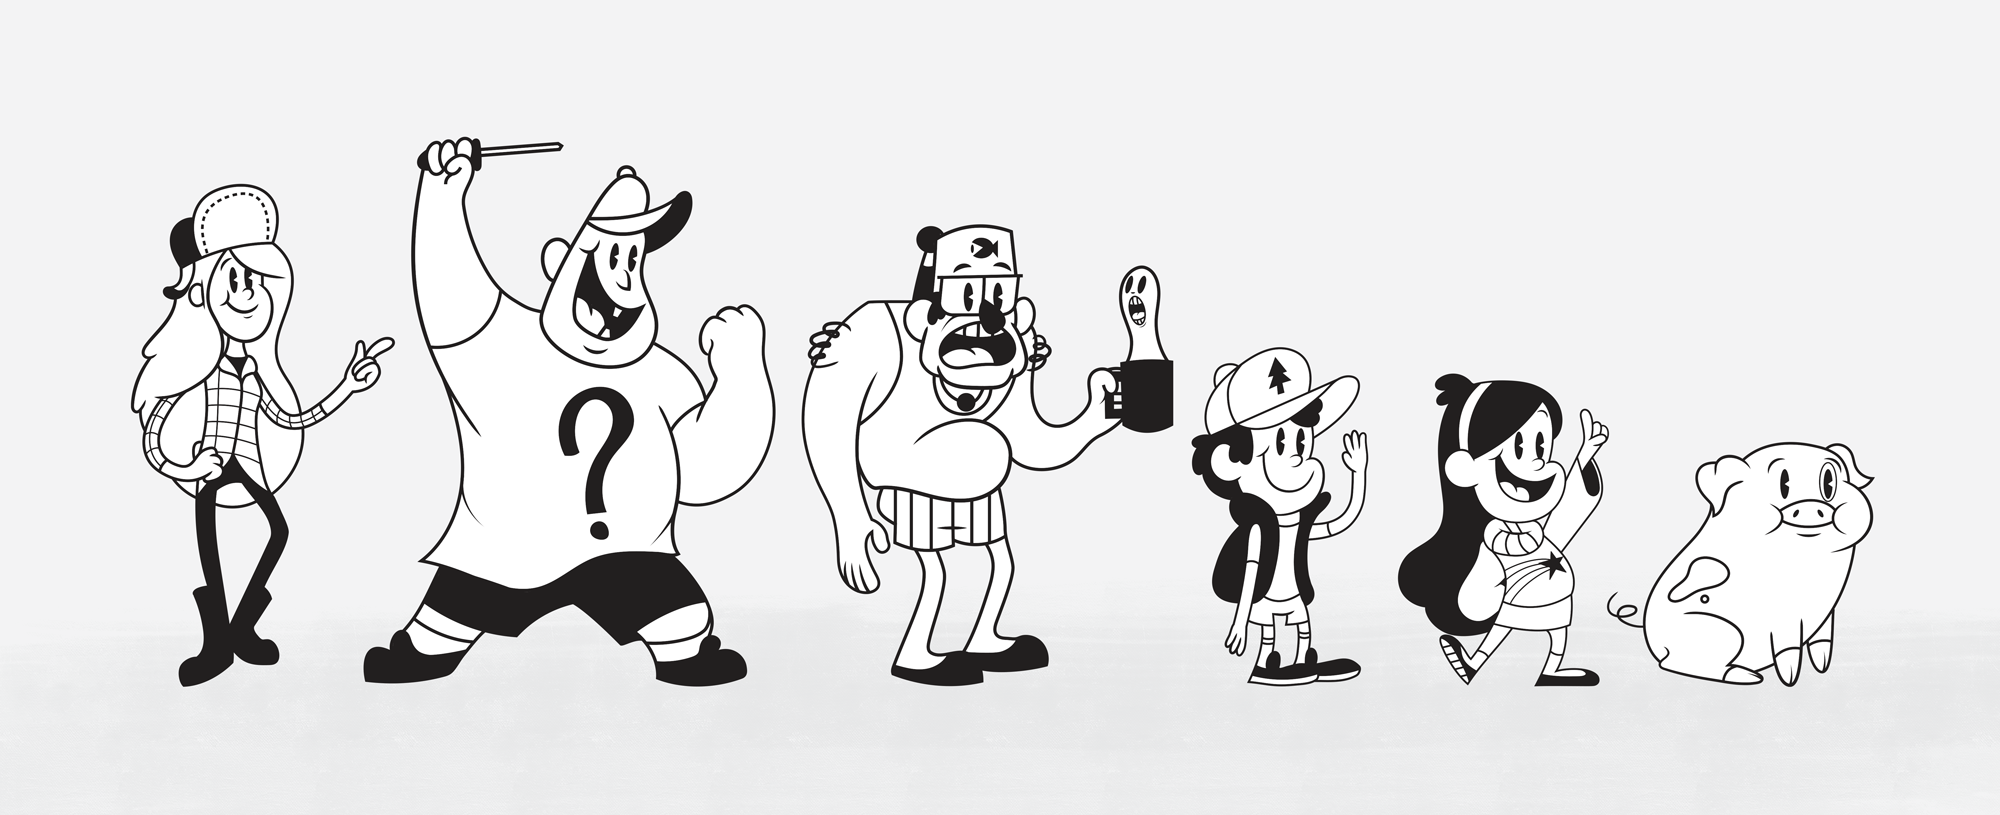 OLd timey gravity falls